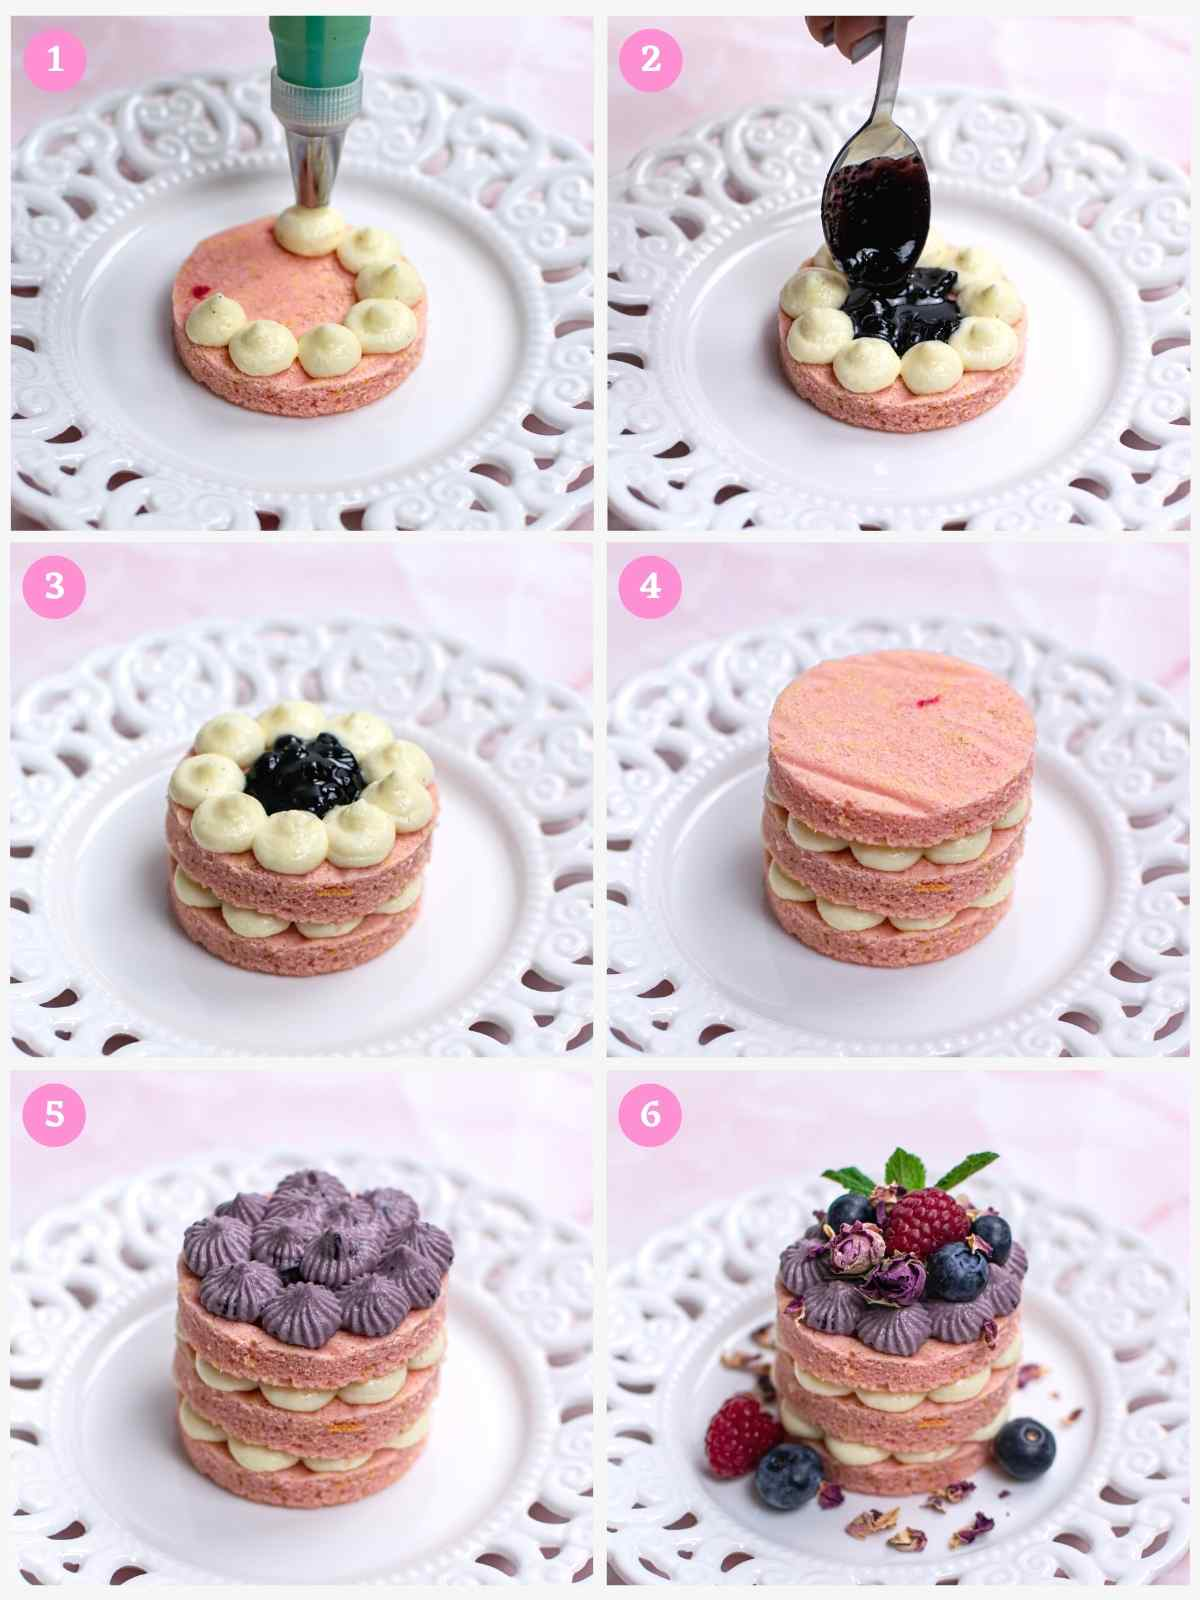 Collage of 6 images showing how to assemble mini blueberry cake